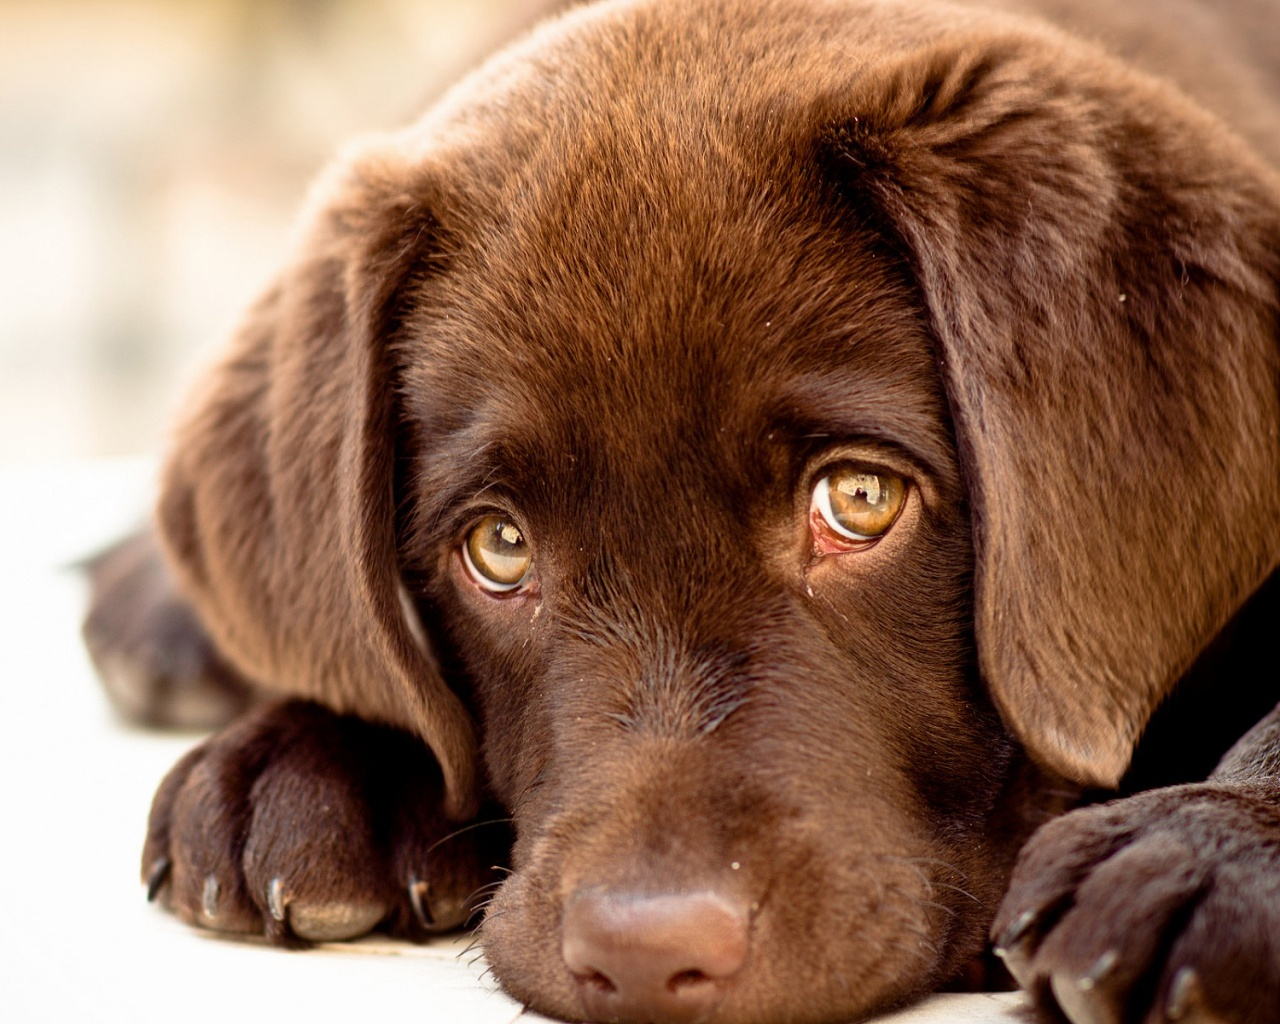 Description: The Wallpaper above is Innocent puppy eyes Wallpaper in Resolution 1280x1024. Choose your Resolution and Download Innocent puppy eyes Wallpaper